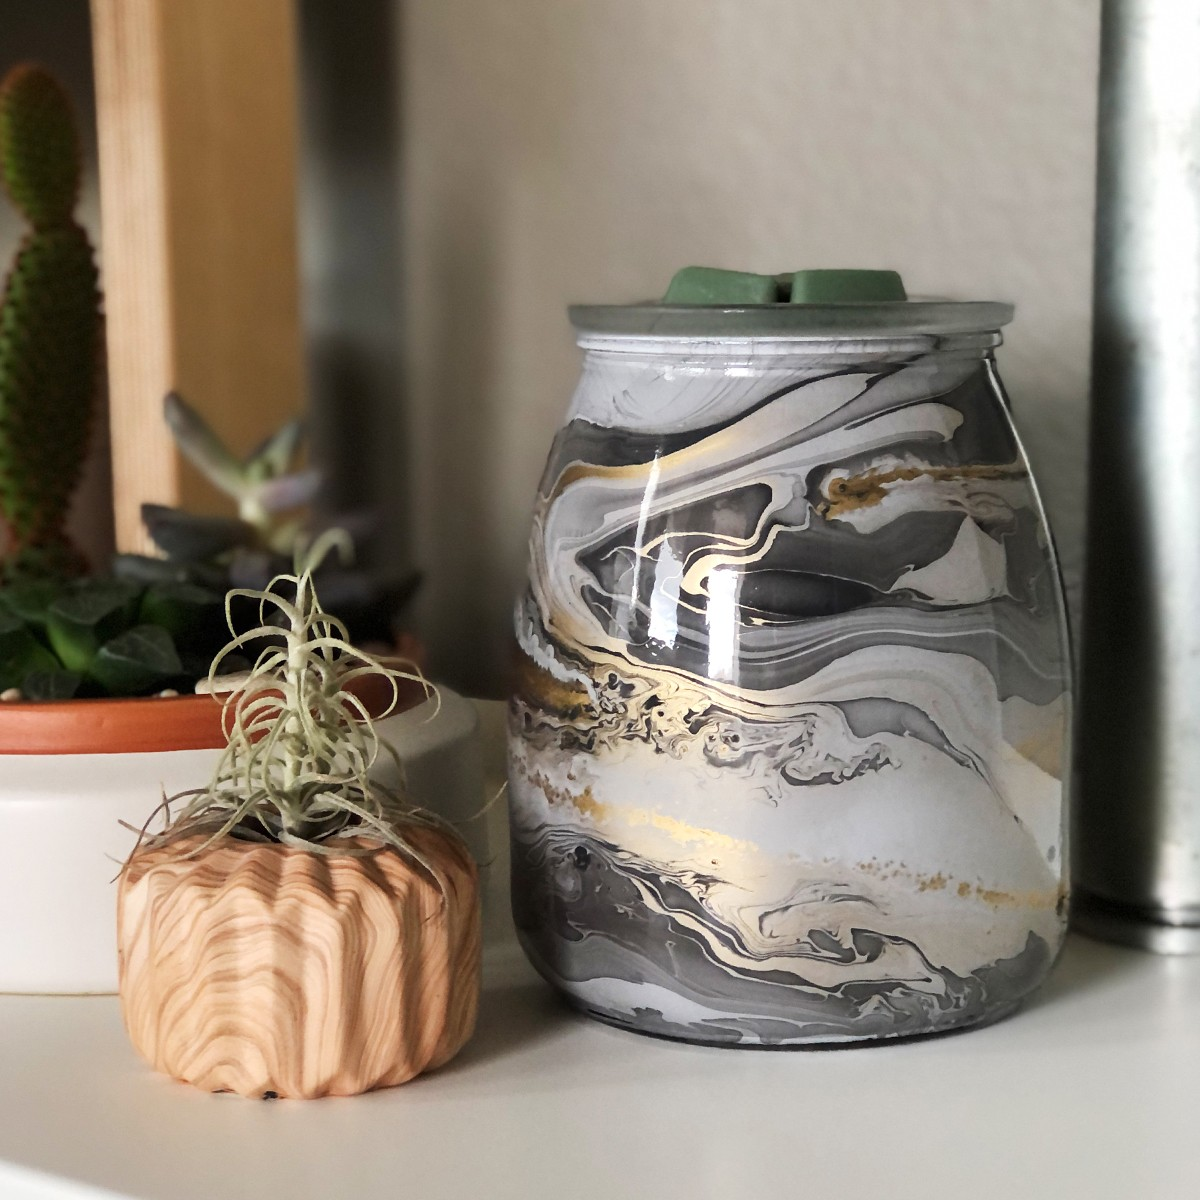 Scentsy Marble Candle Warmer